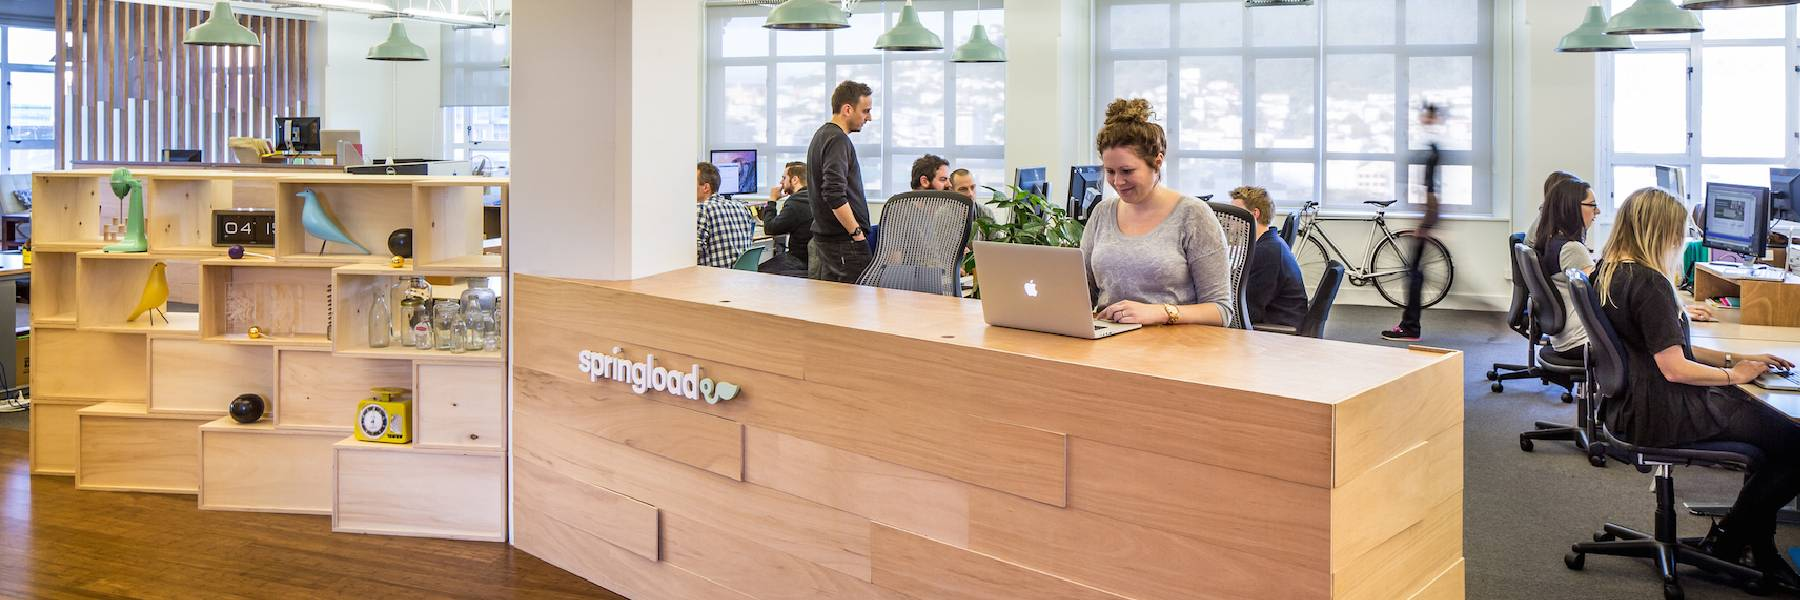 The Springload office reception area